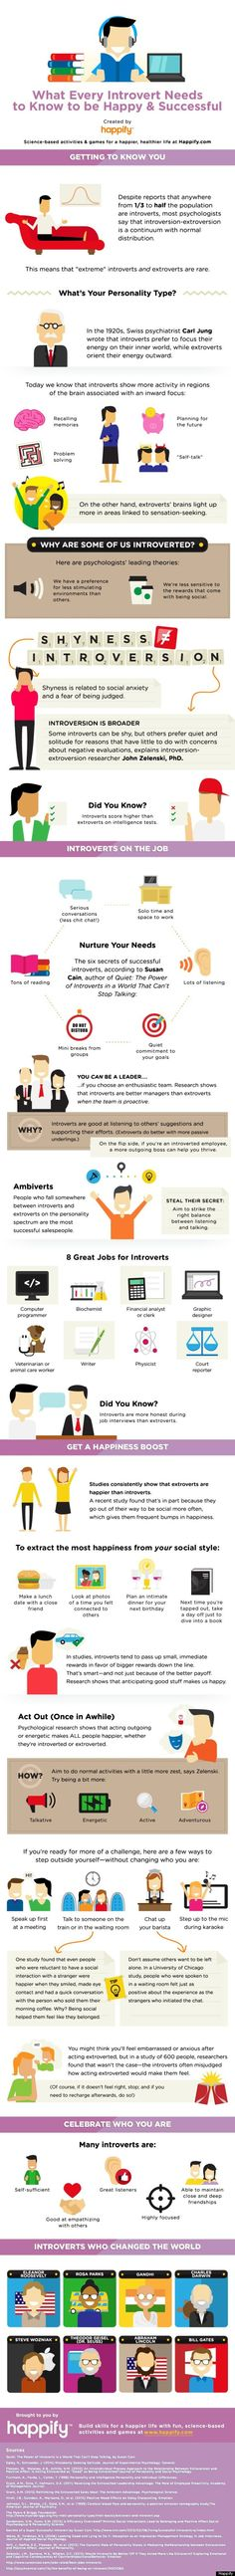 So this infograph seems to think that chatting up my barista will contribute to my overall happiness? Not sure about that, but the rest looks doable! ;)